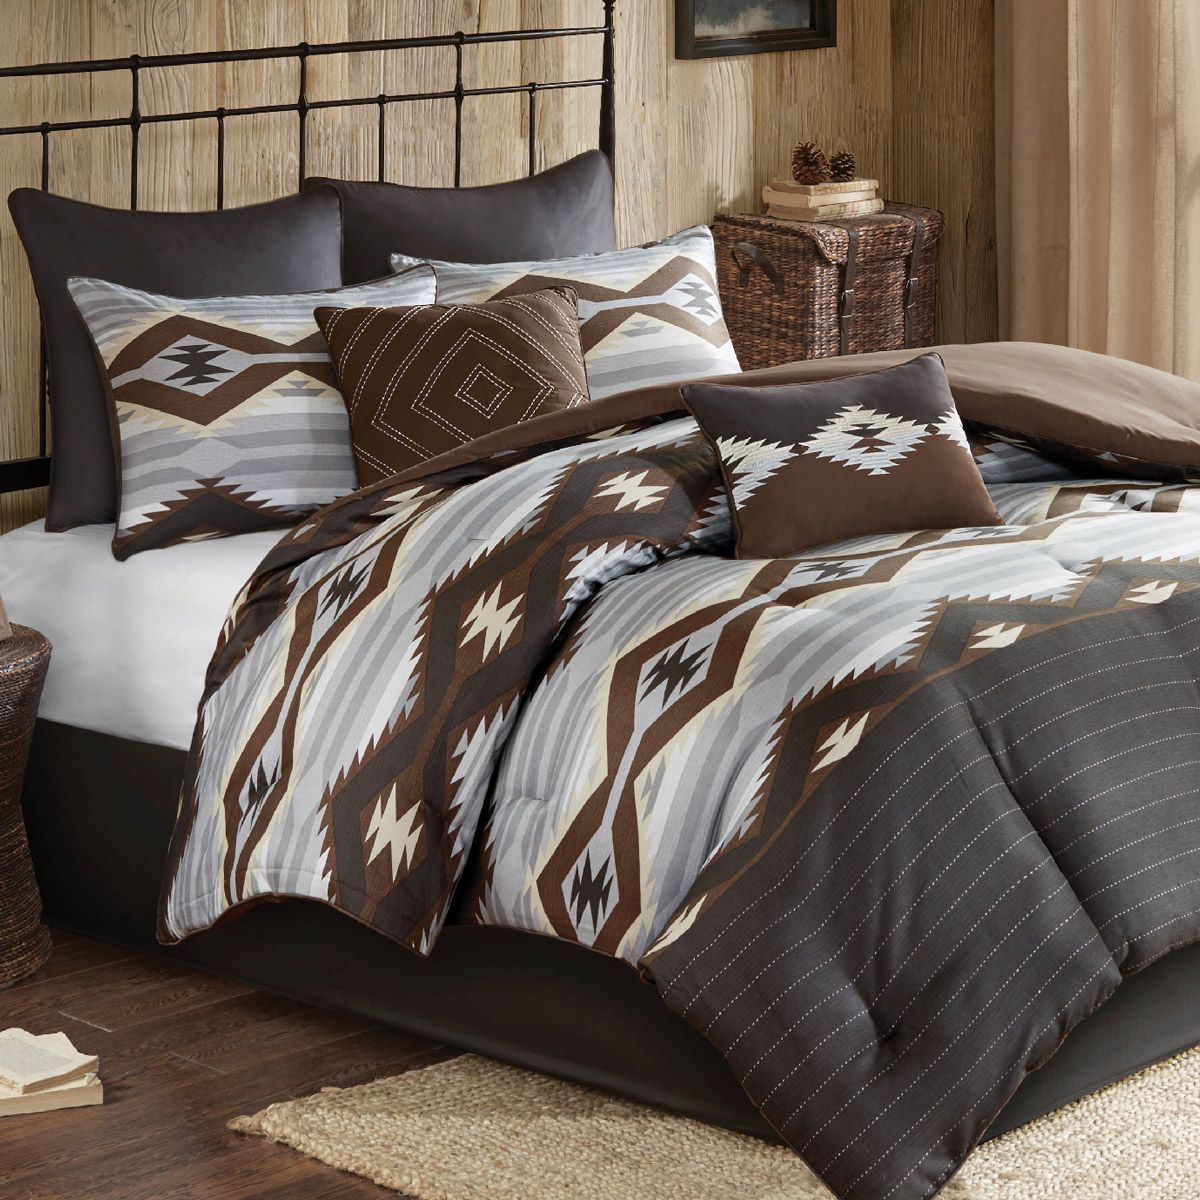 Slate River Oversized Bed Set - Full